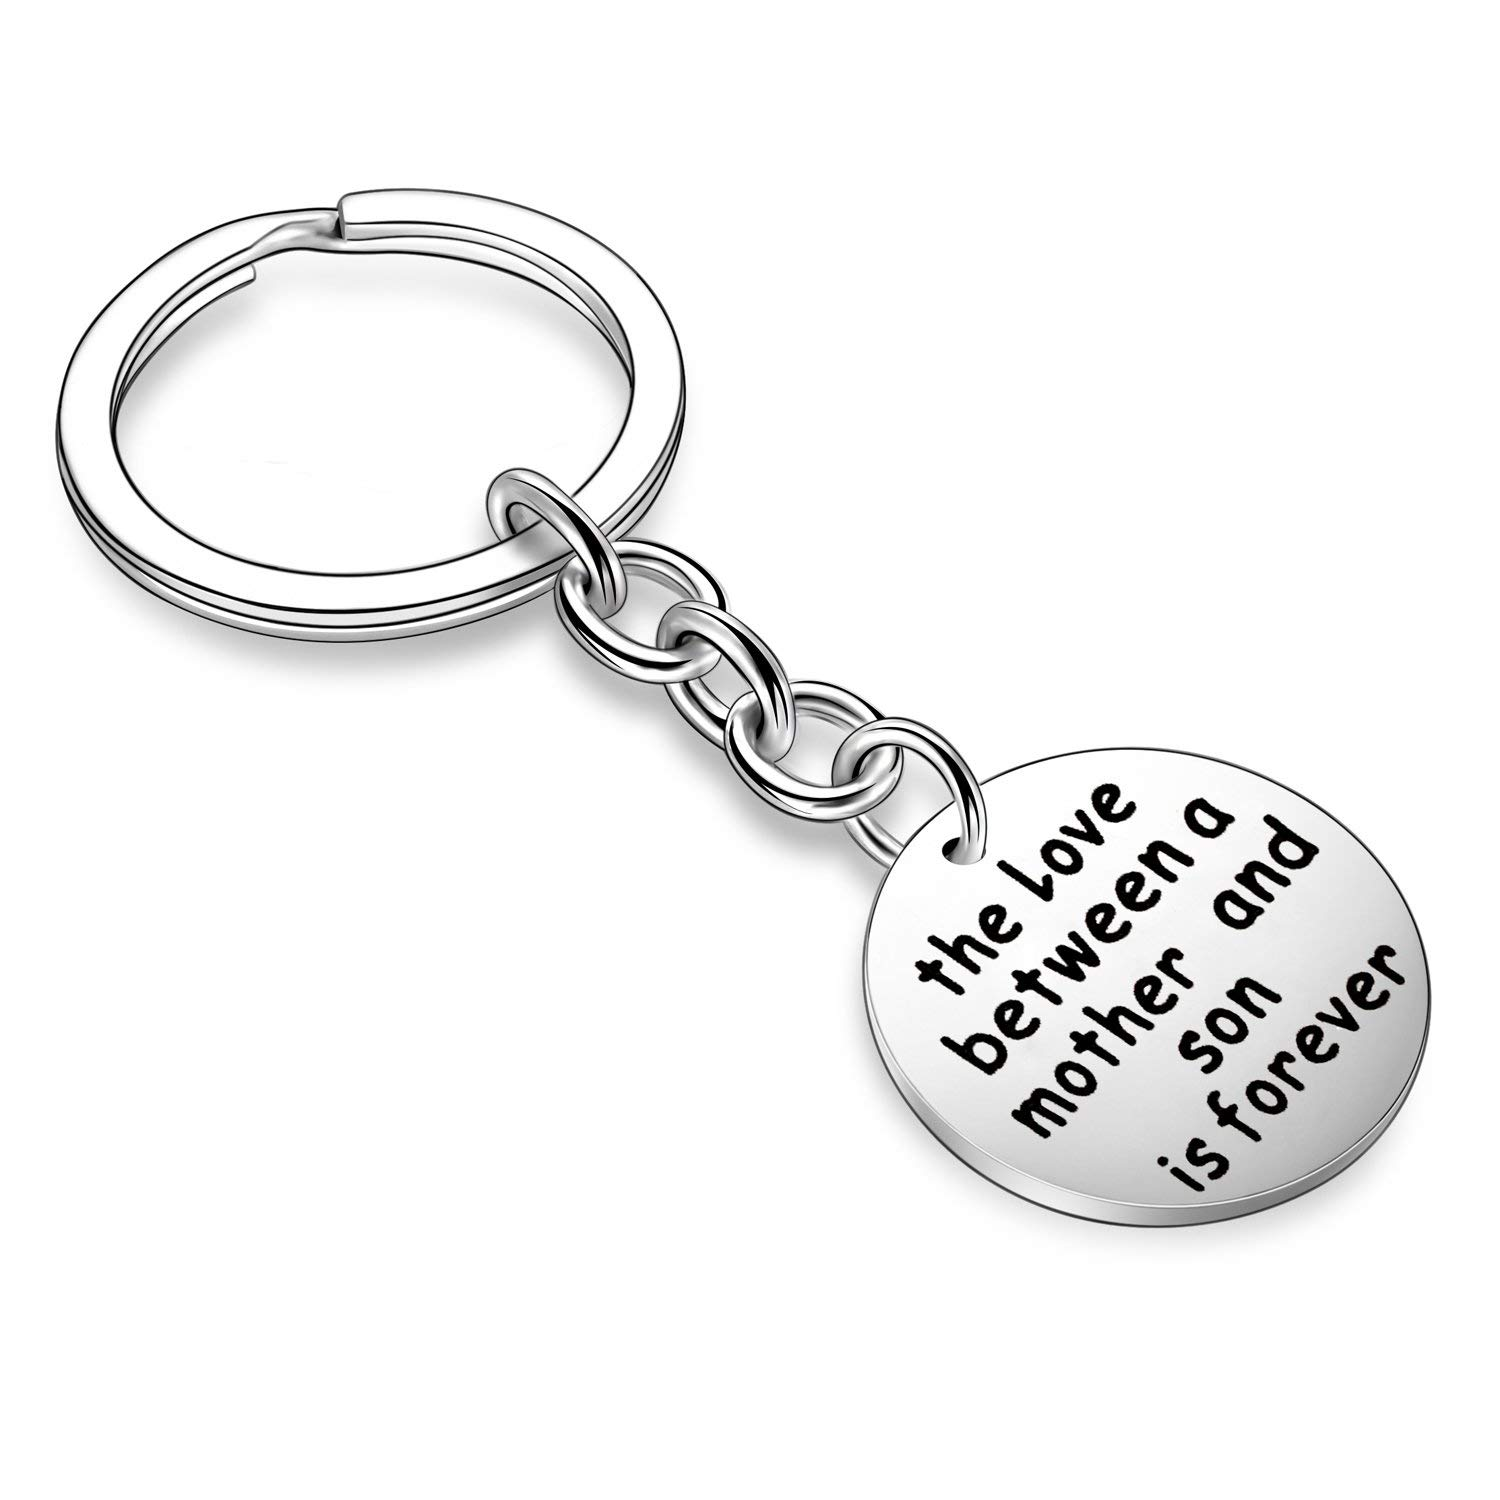 Family Gifts Mother Daughter Son Grandmother Granddaughter Grandson Love Forever Keychain Mom Grandma Jewelry (The Love Between A Mother and Son is Forever)